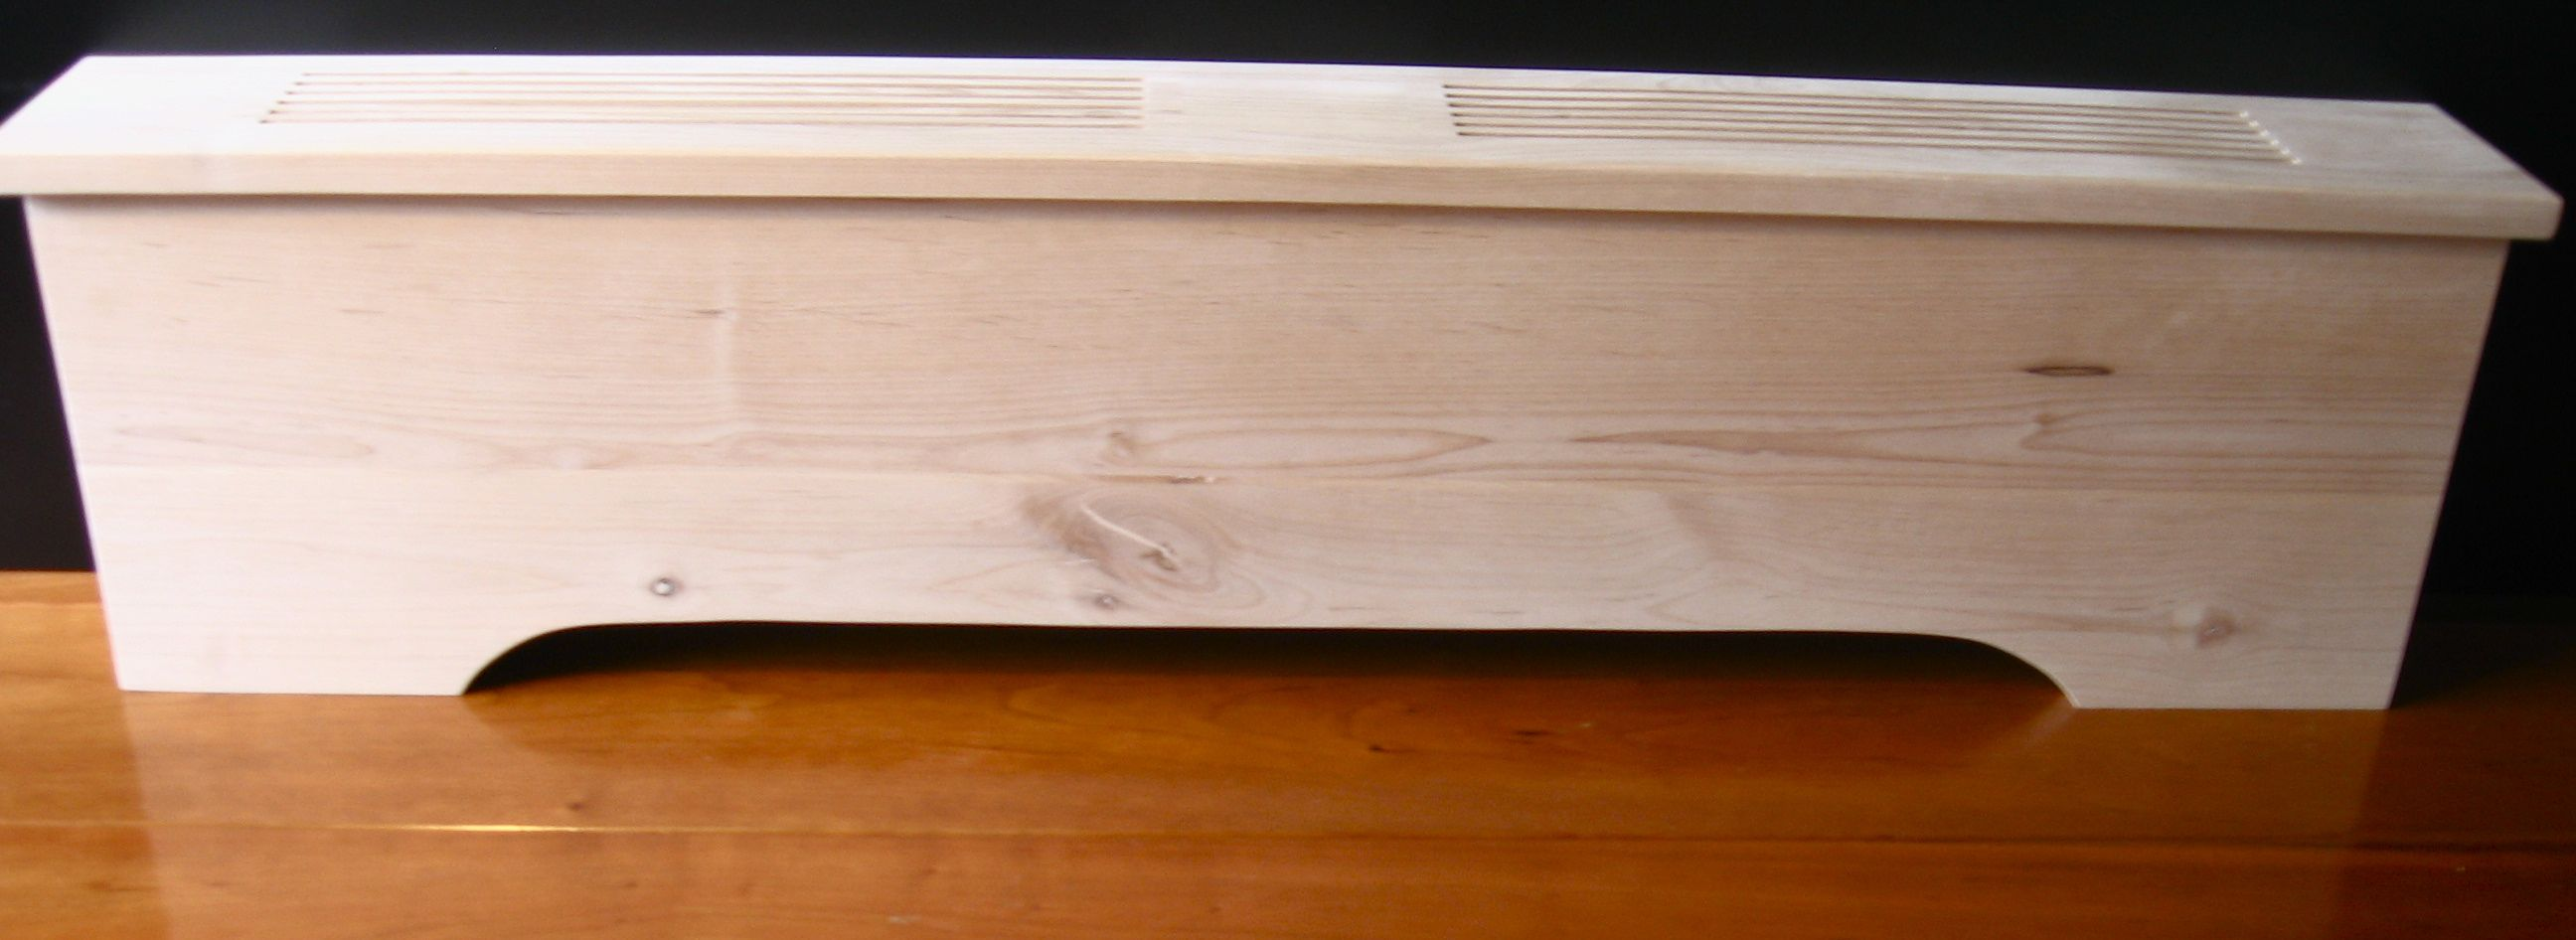 Wooden Baseboard Heater Cover Get Rid Of The Rusty Metal